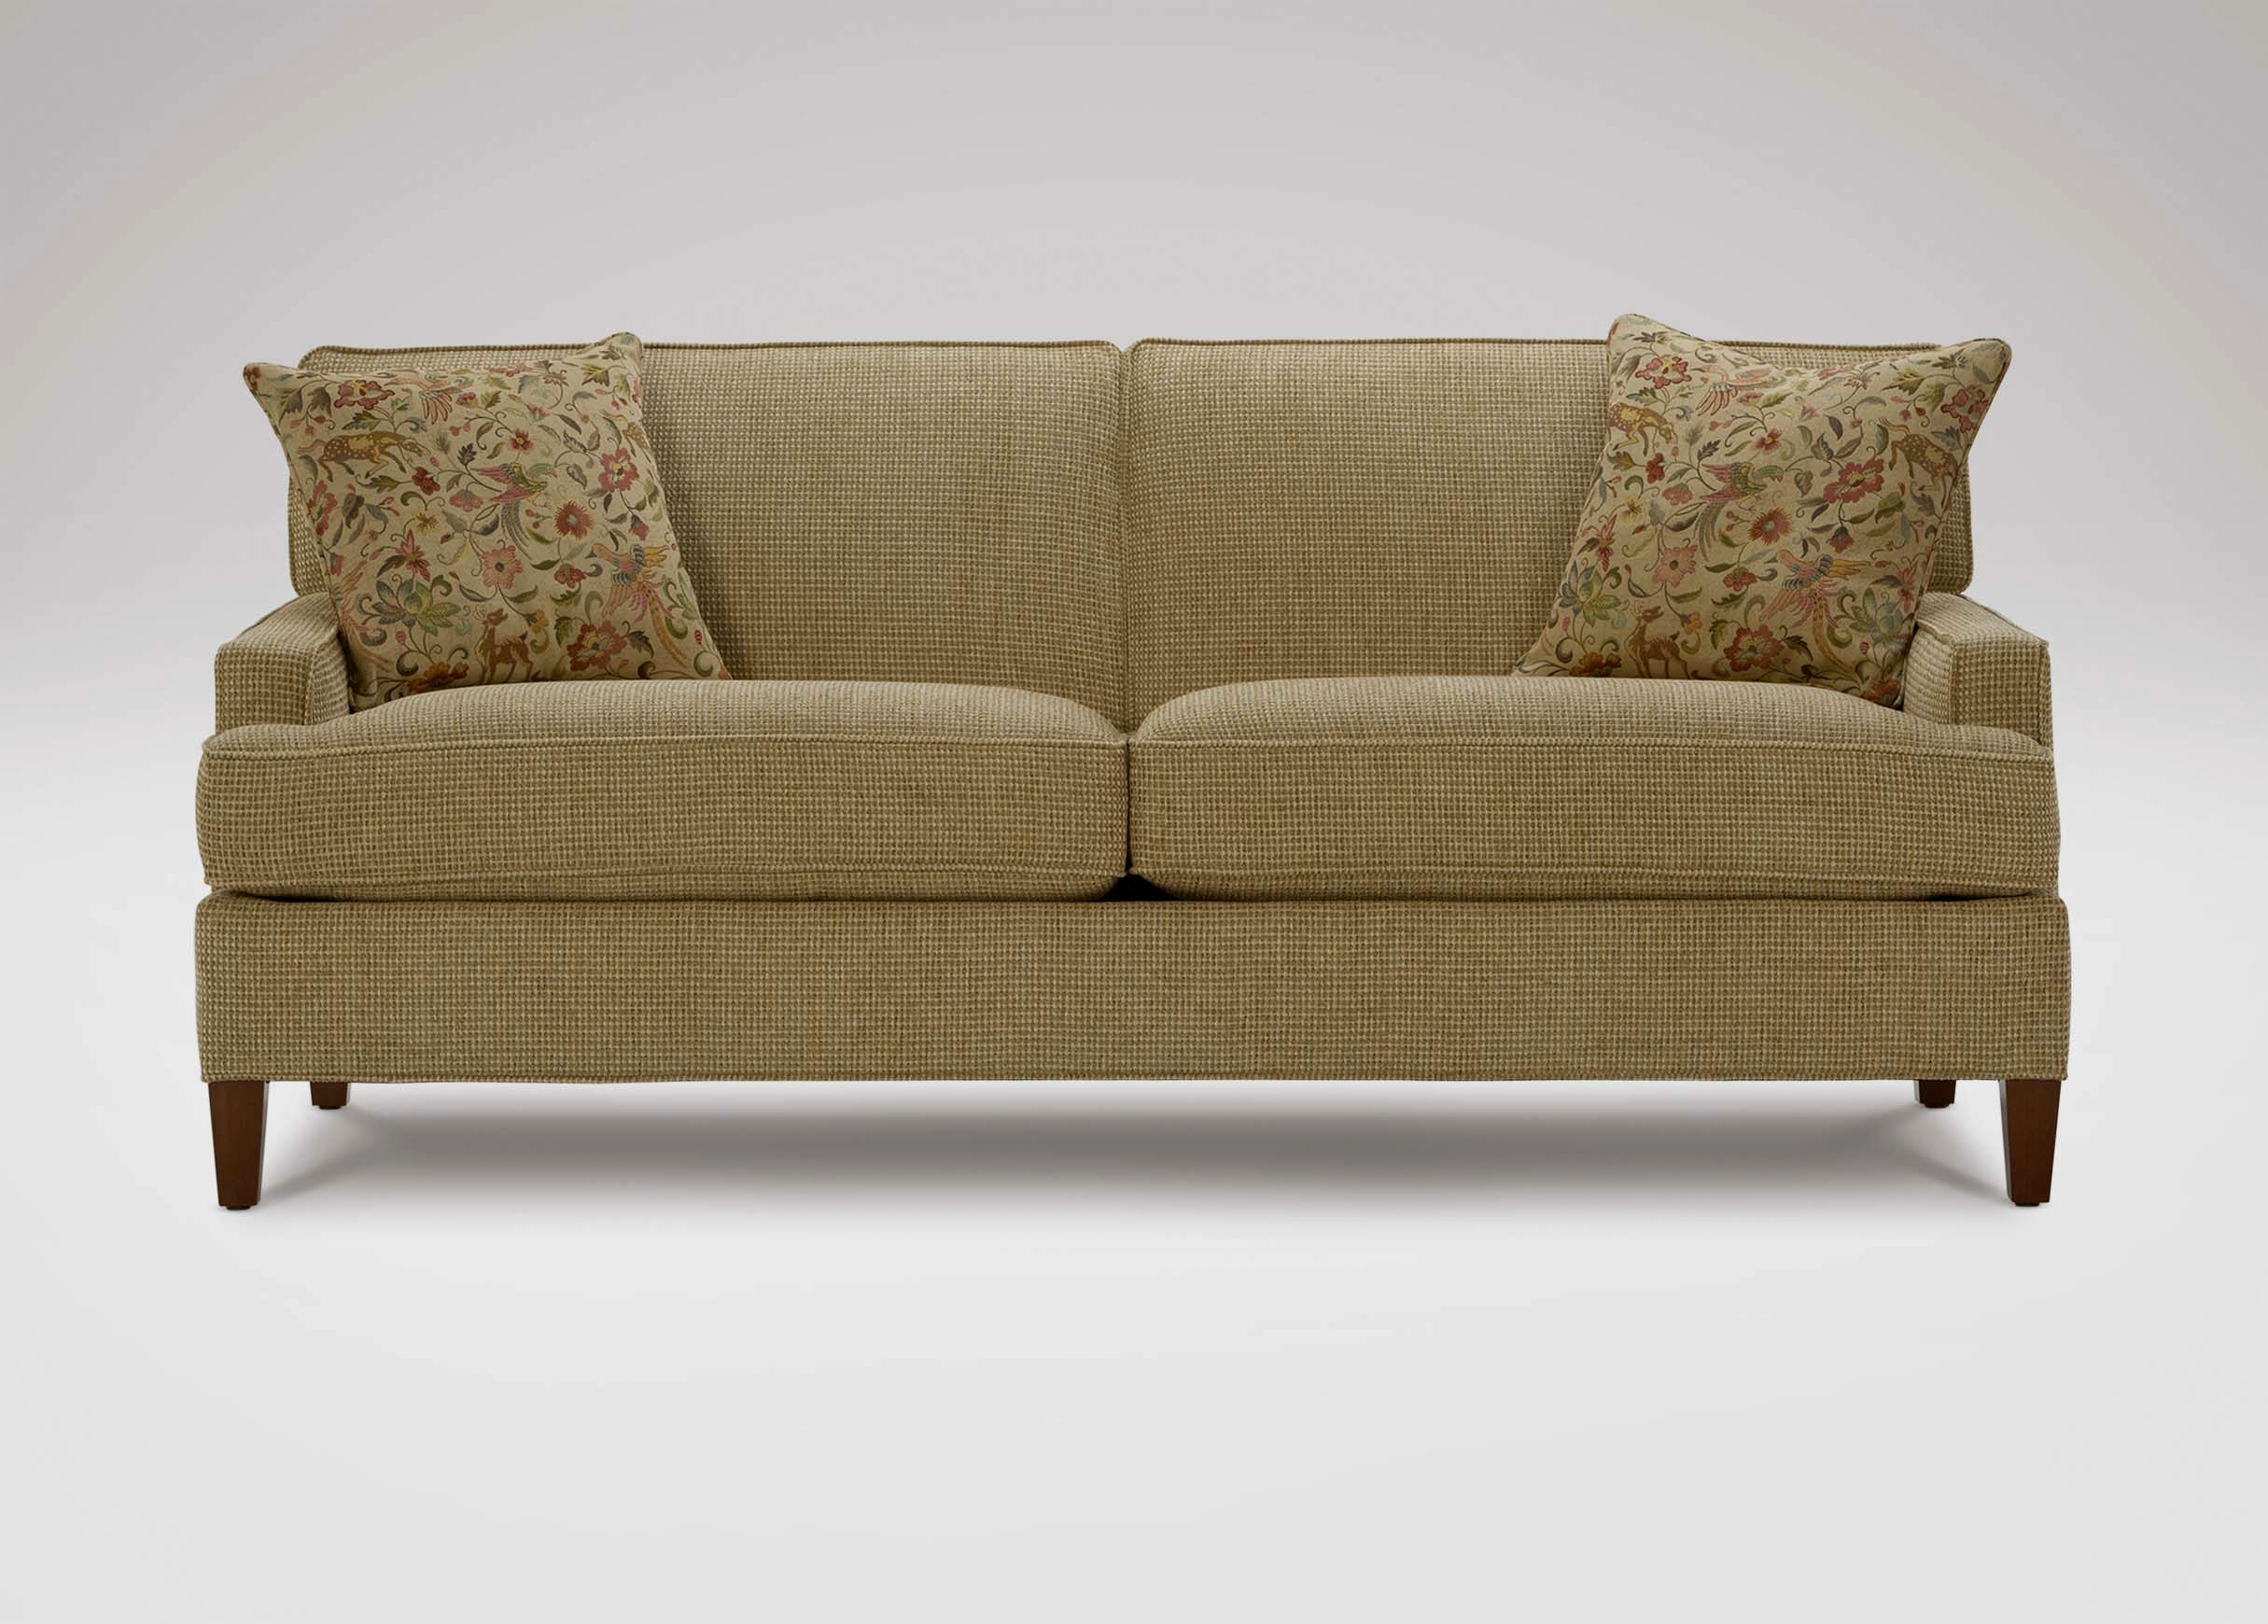 New Ethan Allen Sofa Design Fascinating Layout